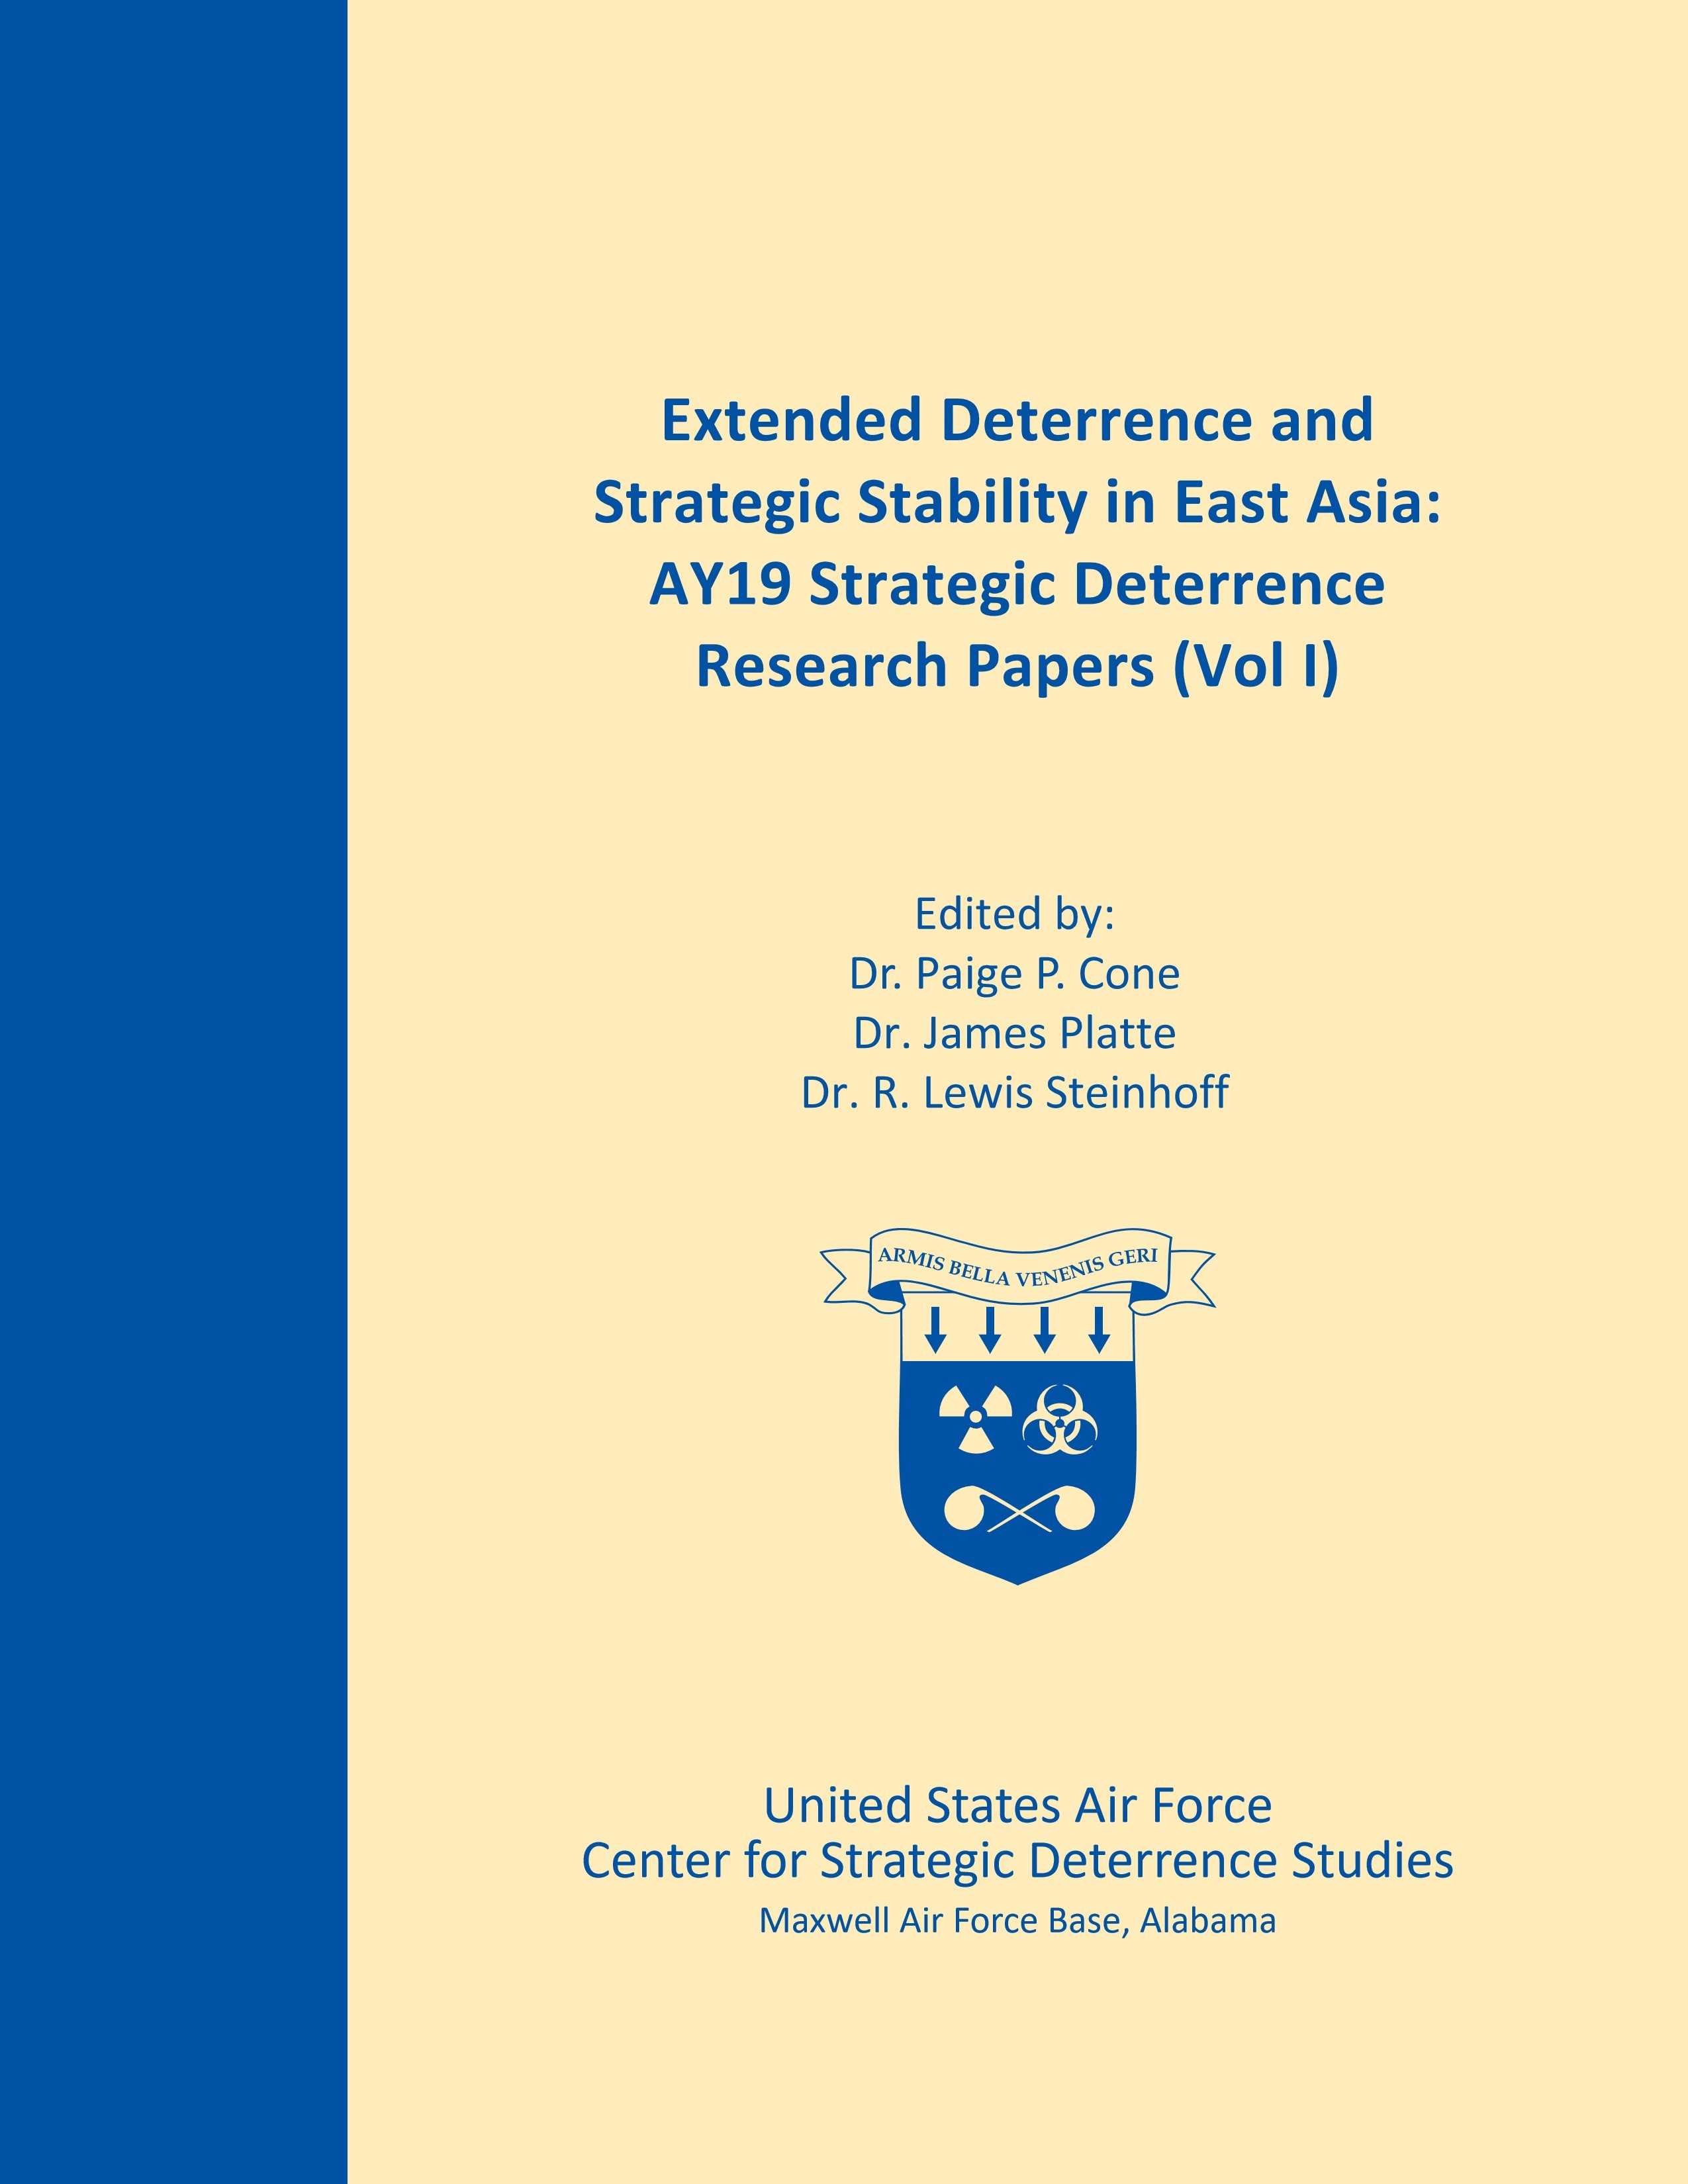 Extended Deterrence and Strategic Stability in East Asia: AY19 Strategic Deterrence Research Papers (Vol I), 2019